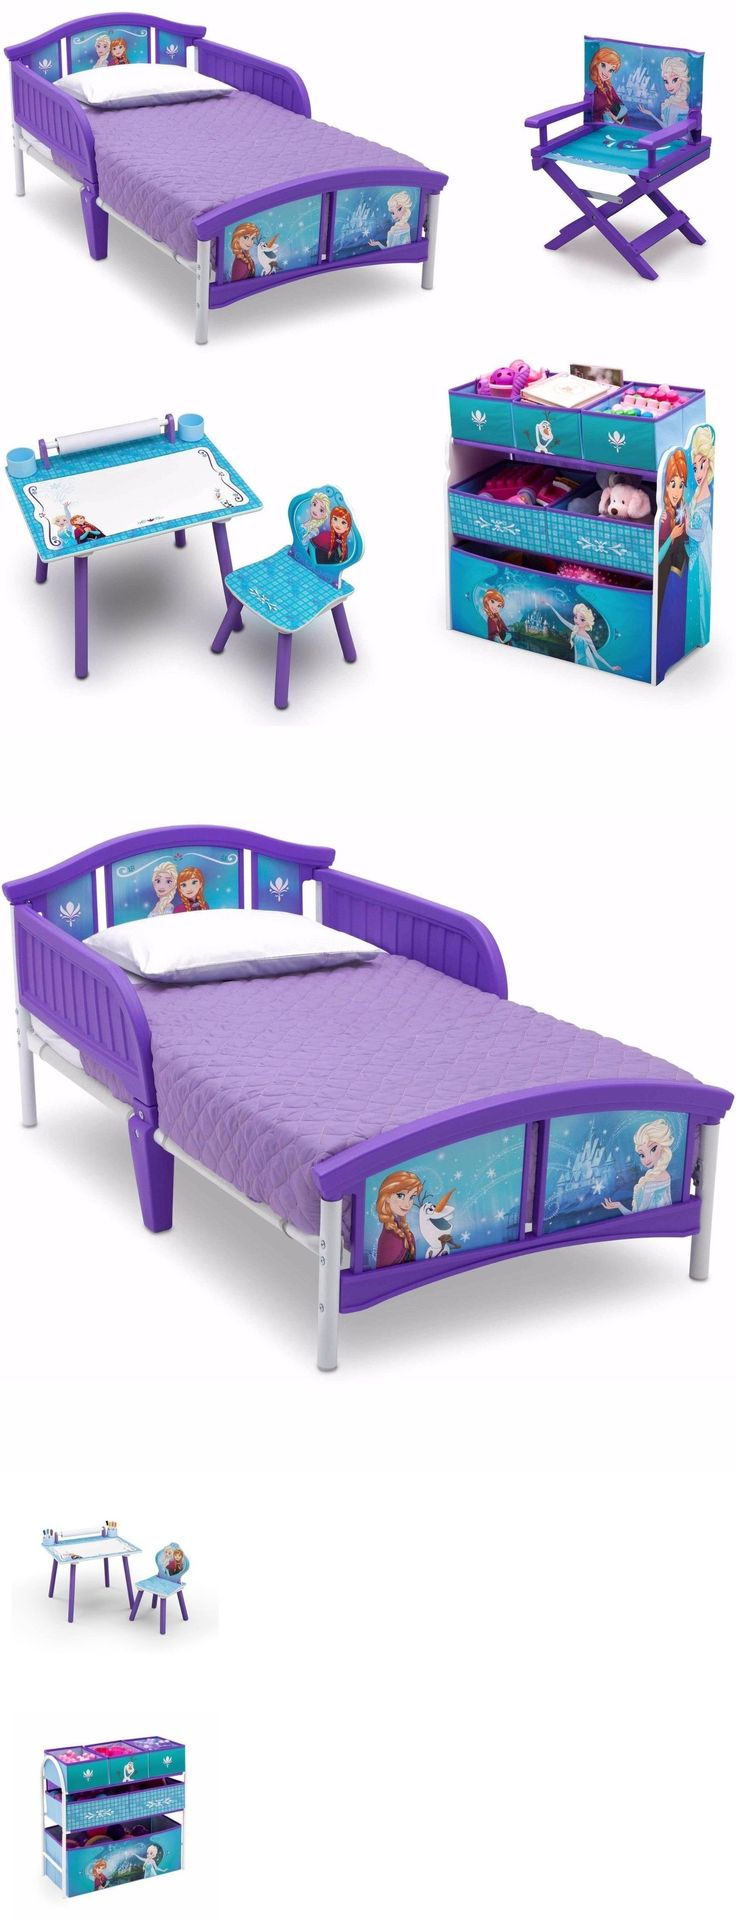 Kids at Home: Cheap Bedroom Sets Kids Elsa From Frozen For Girls Toddler Beds Furniture Bonus BUY IT NOW ONLY: $152.82